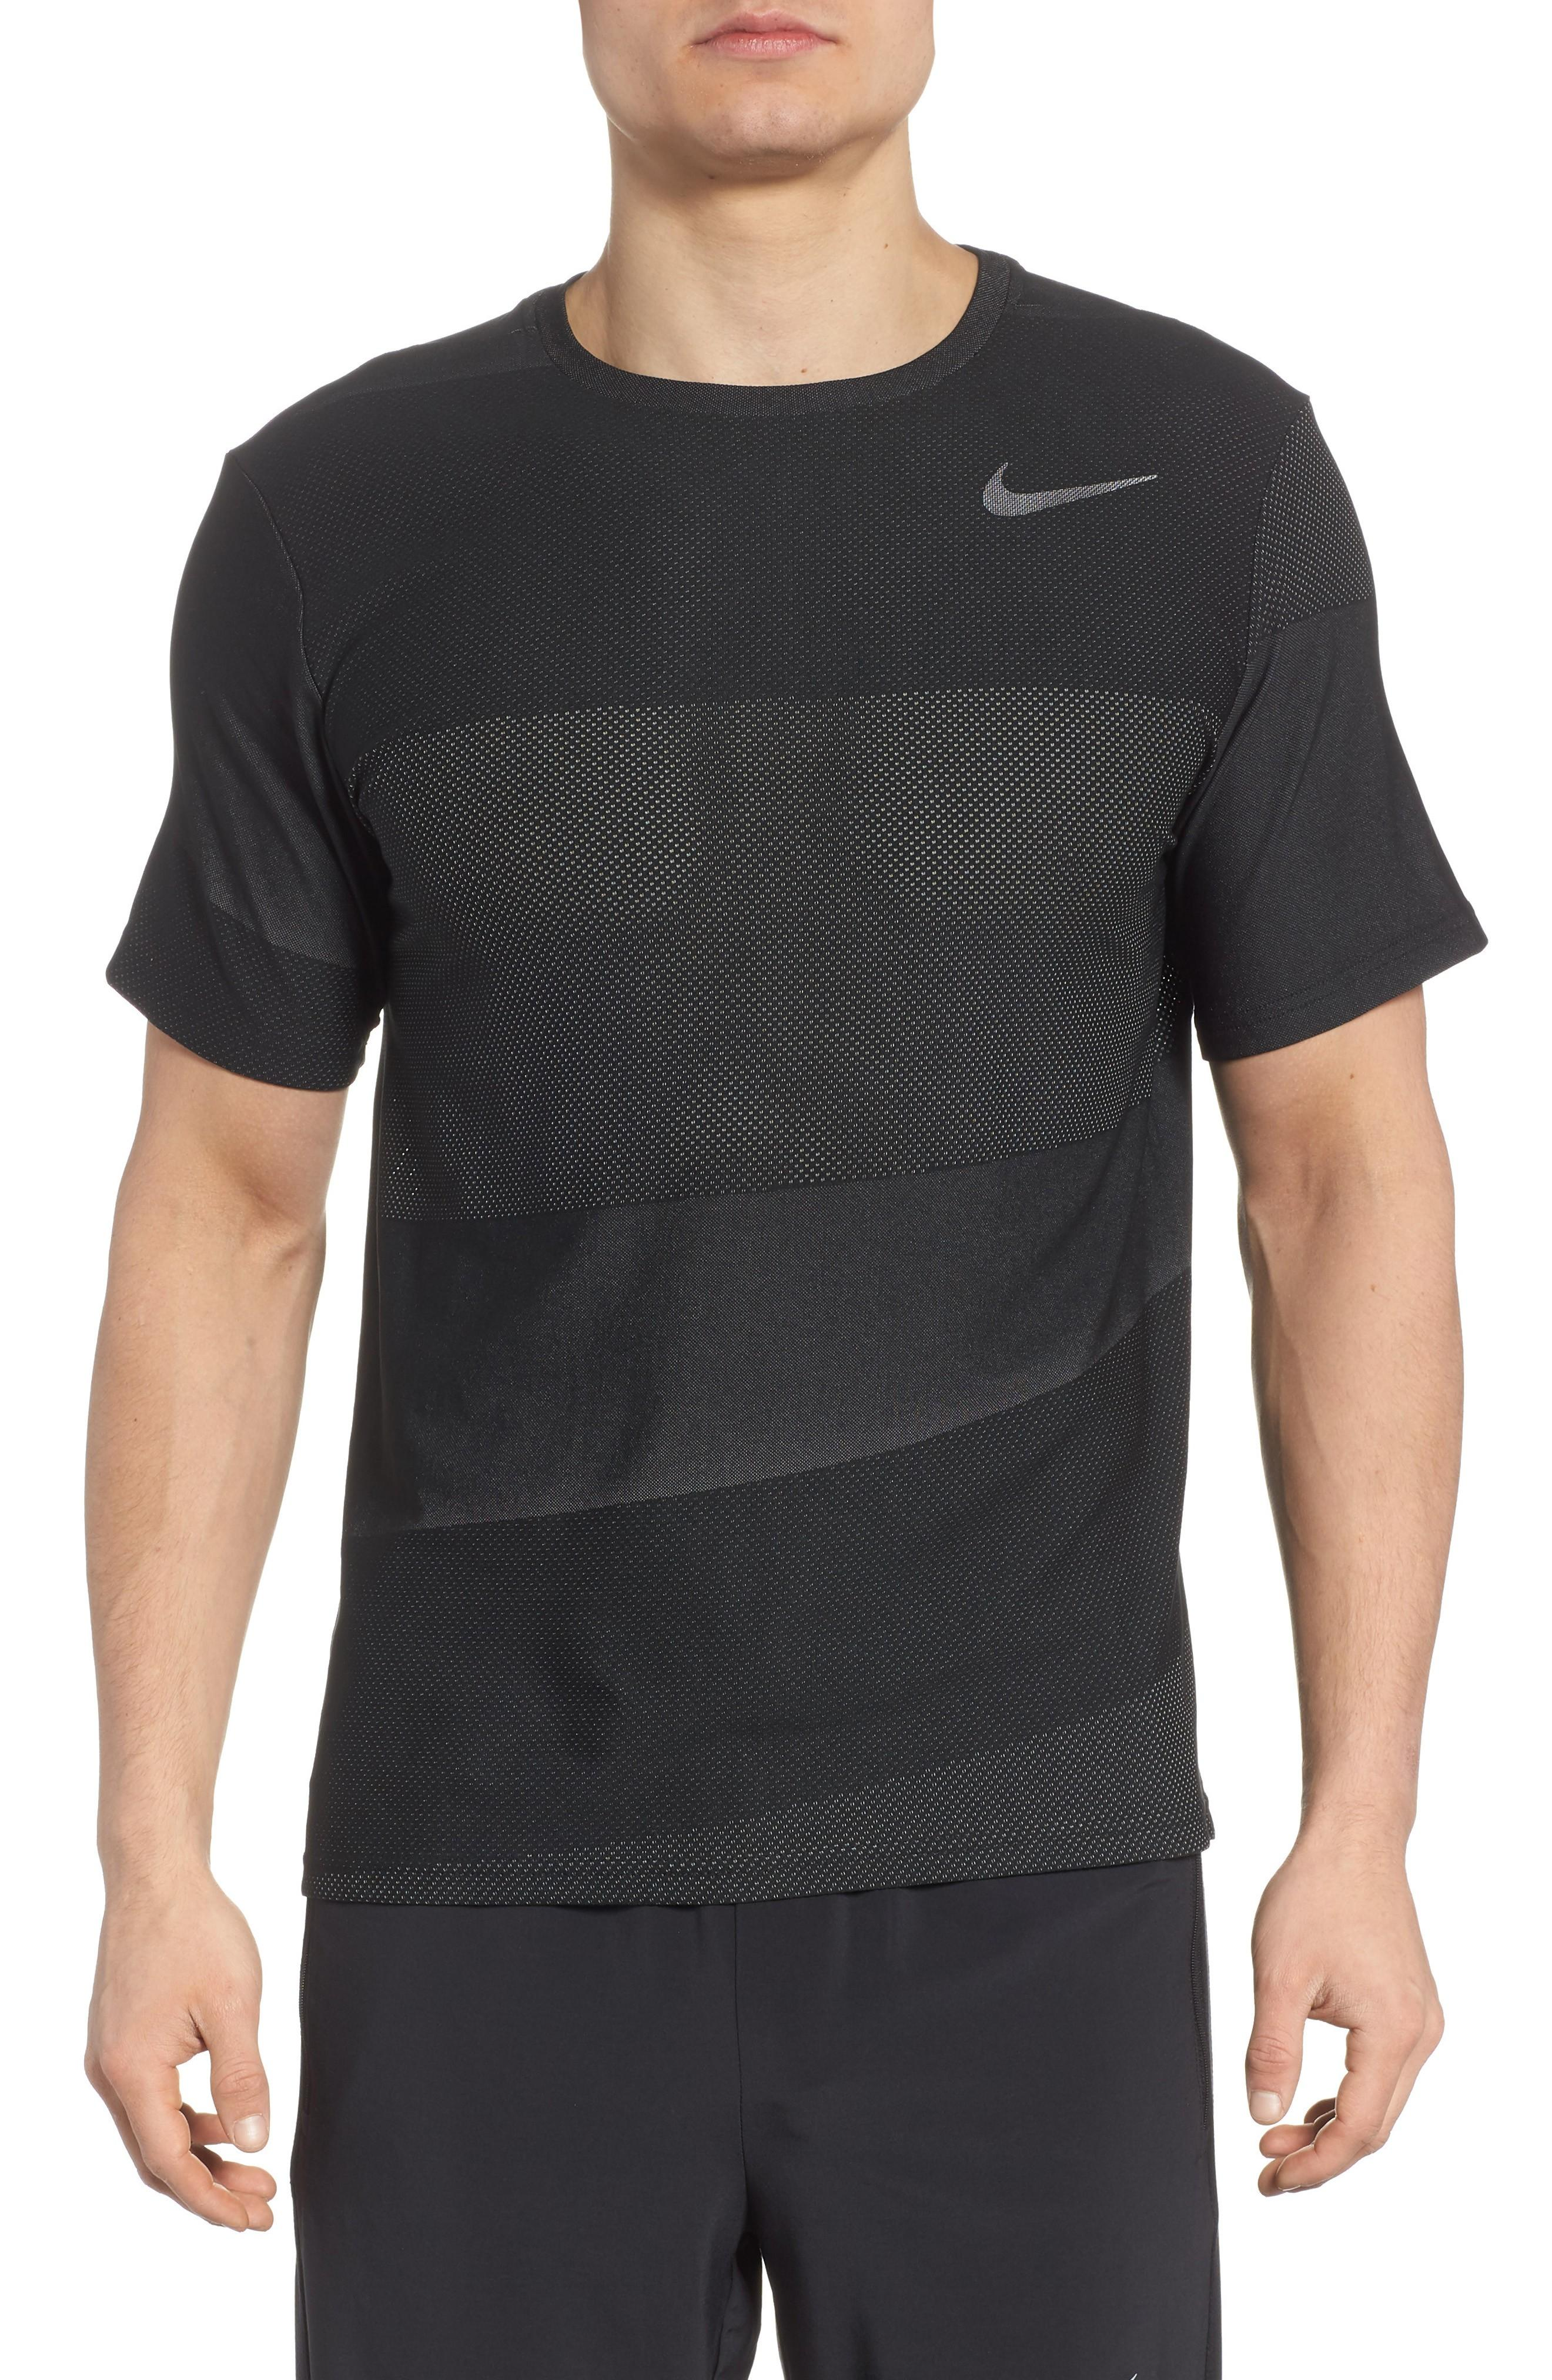 Nike Crewneck Mesh T-shirt In Black/ White/ Mtlc Hematite